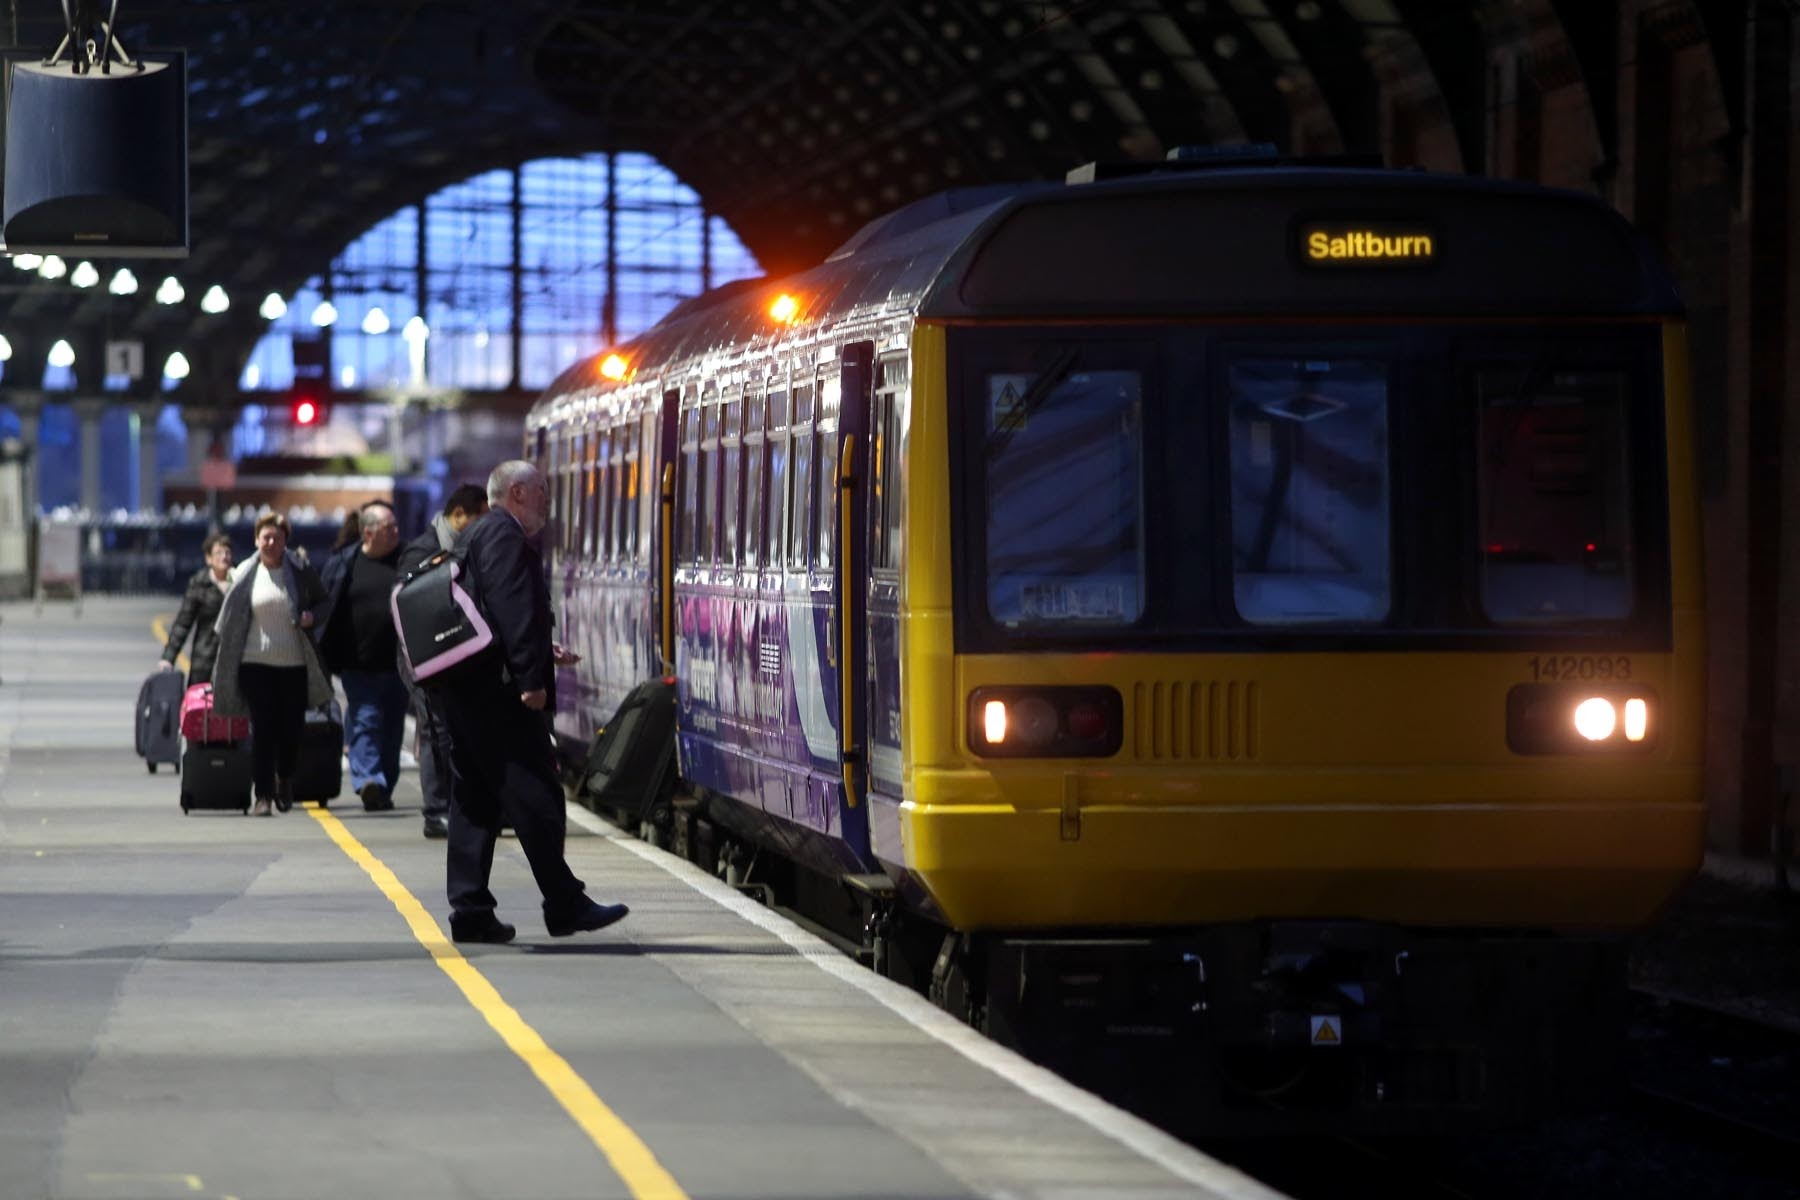 A pacer train bound for Saltburn arrives at Darlington Railway Station. Picture: CHRIS BOOTH